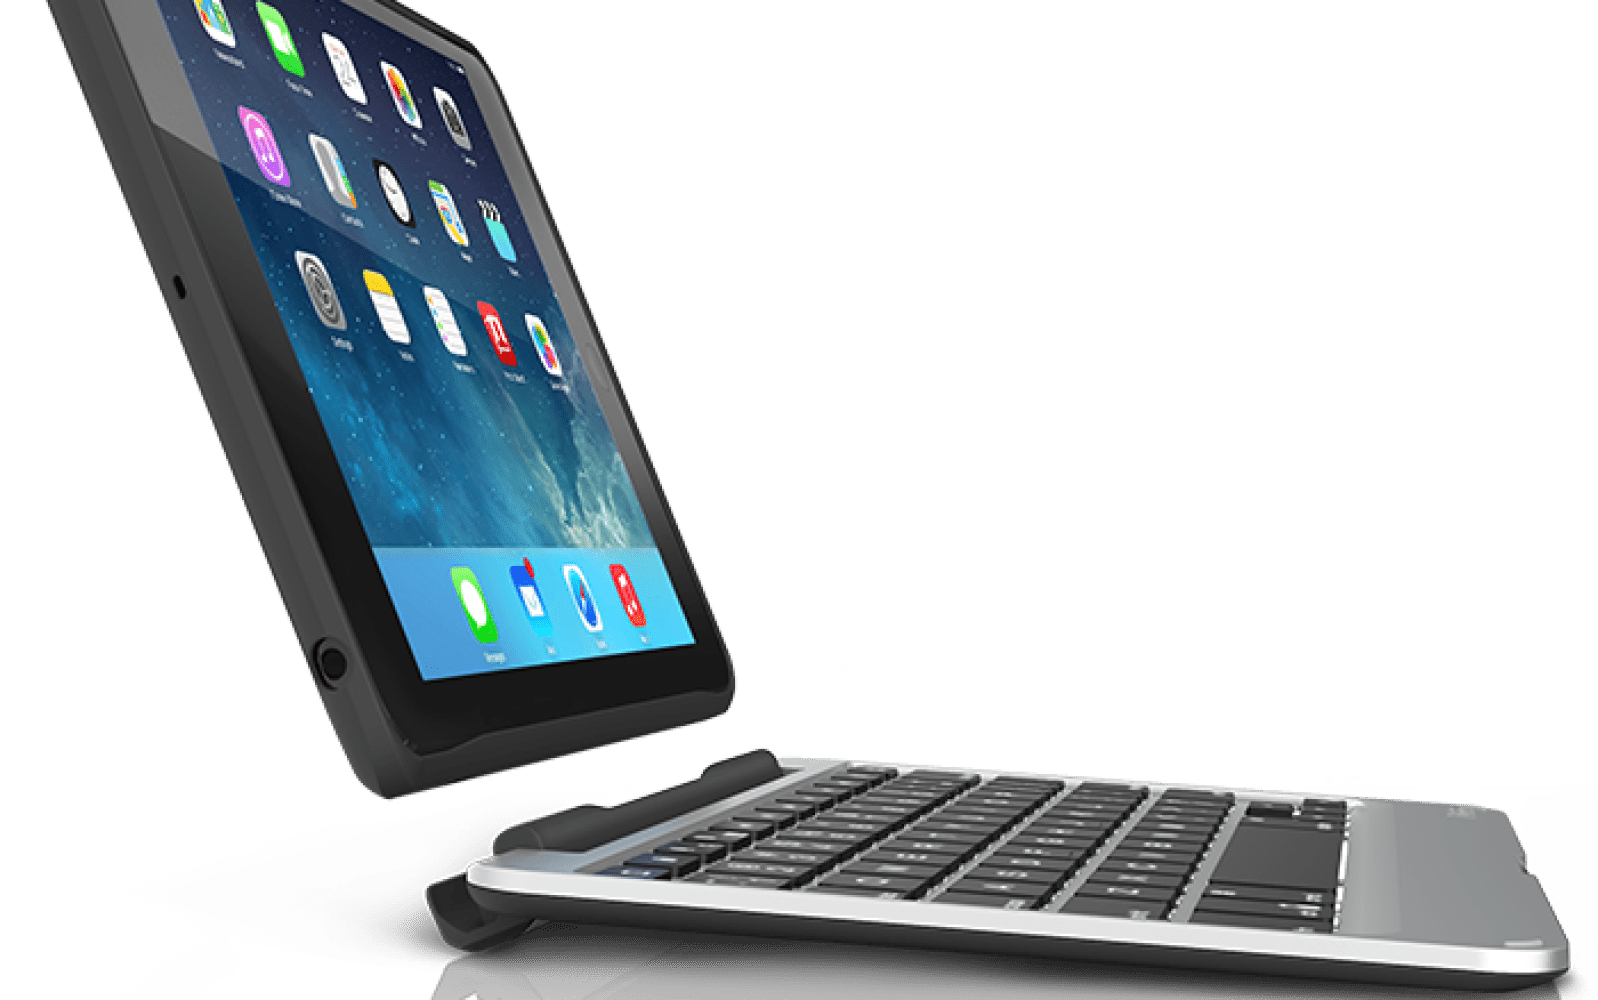 Apple Ipad Mini 16gb With Bonus Zagg Bluetooth Keyboard Case Sfb Messenger Universal 12 Inch Wireless For Android Zaggkeys Folio Air Zaggs